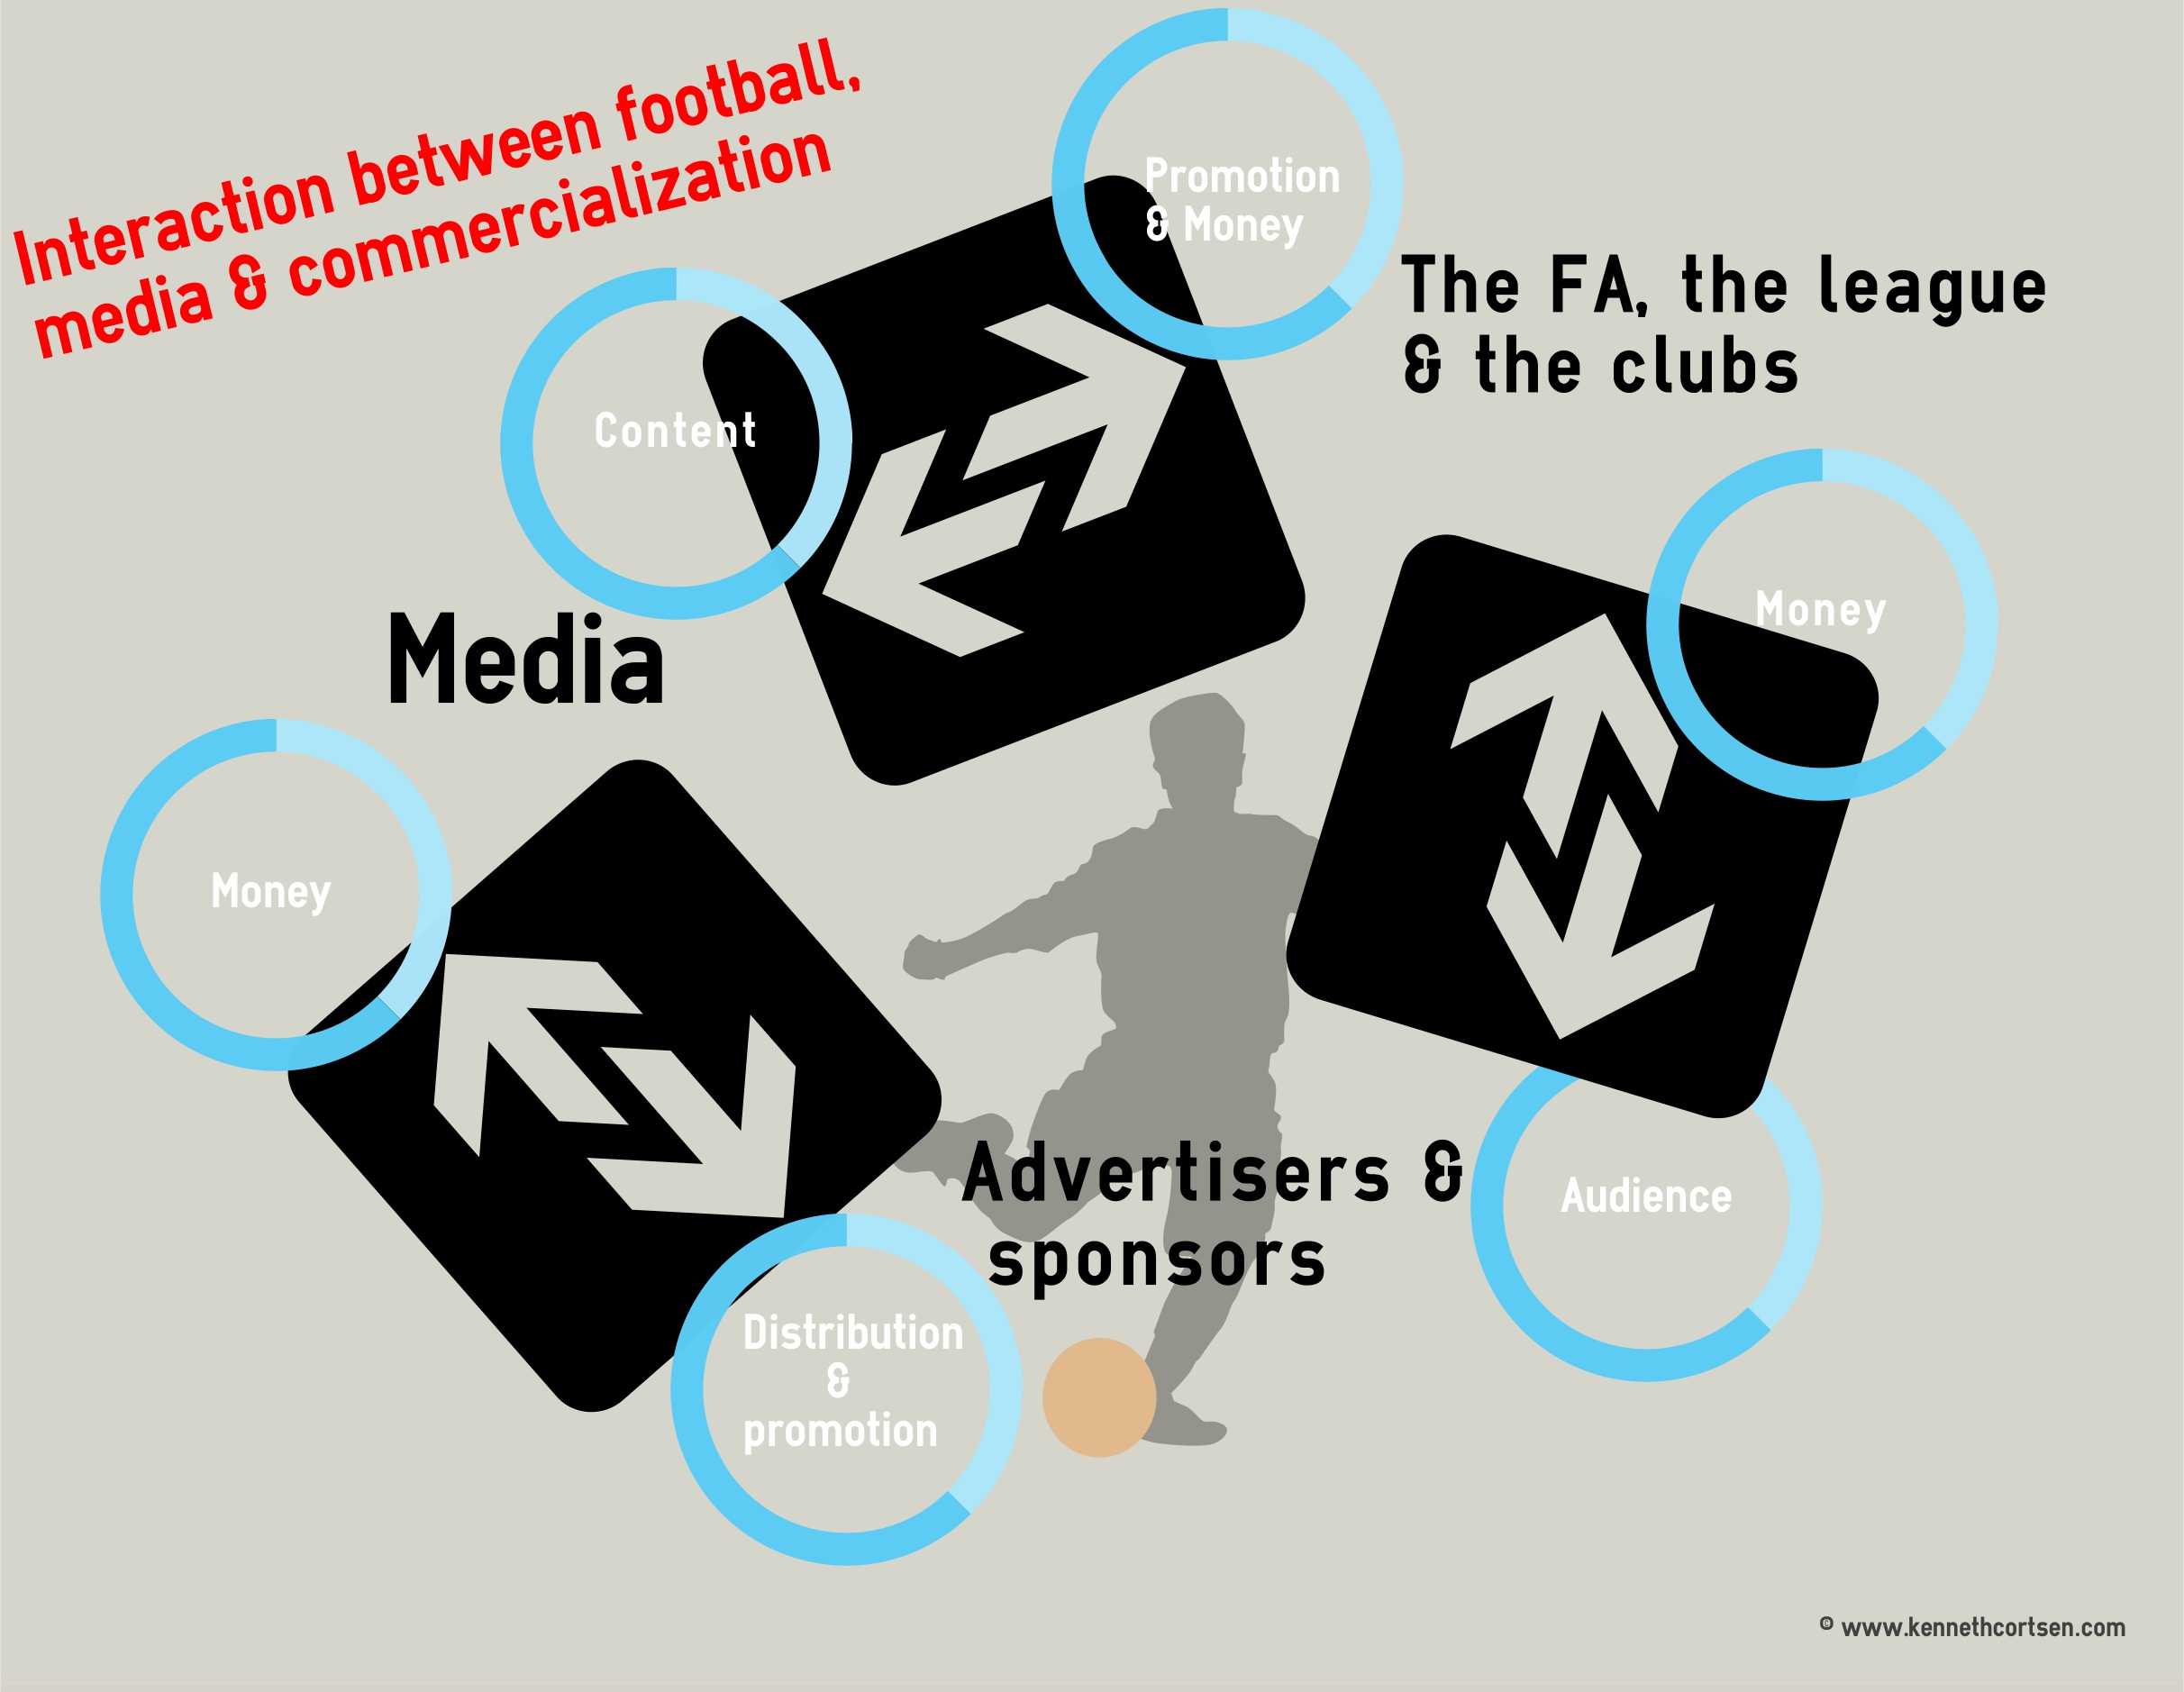 commercialization and media in sports